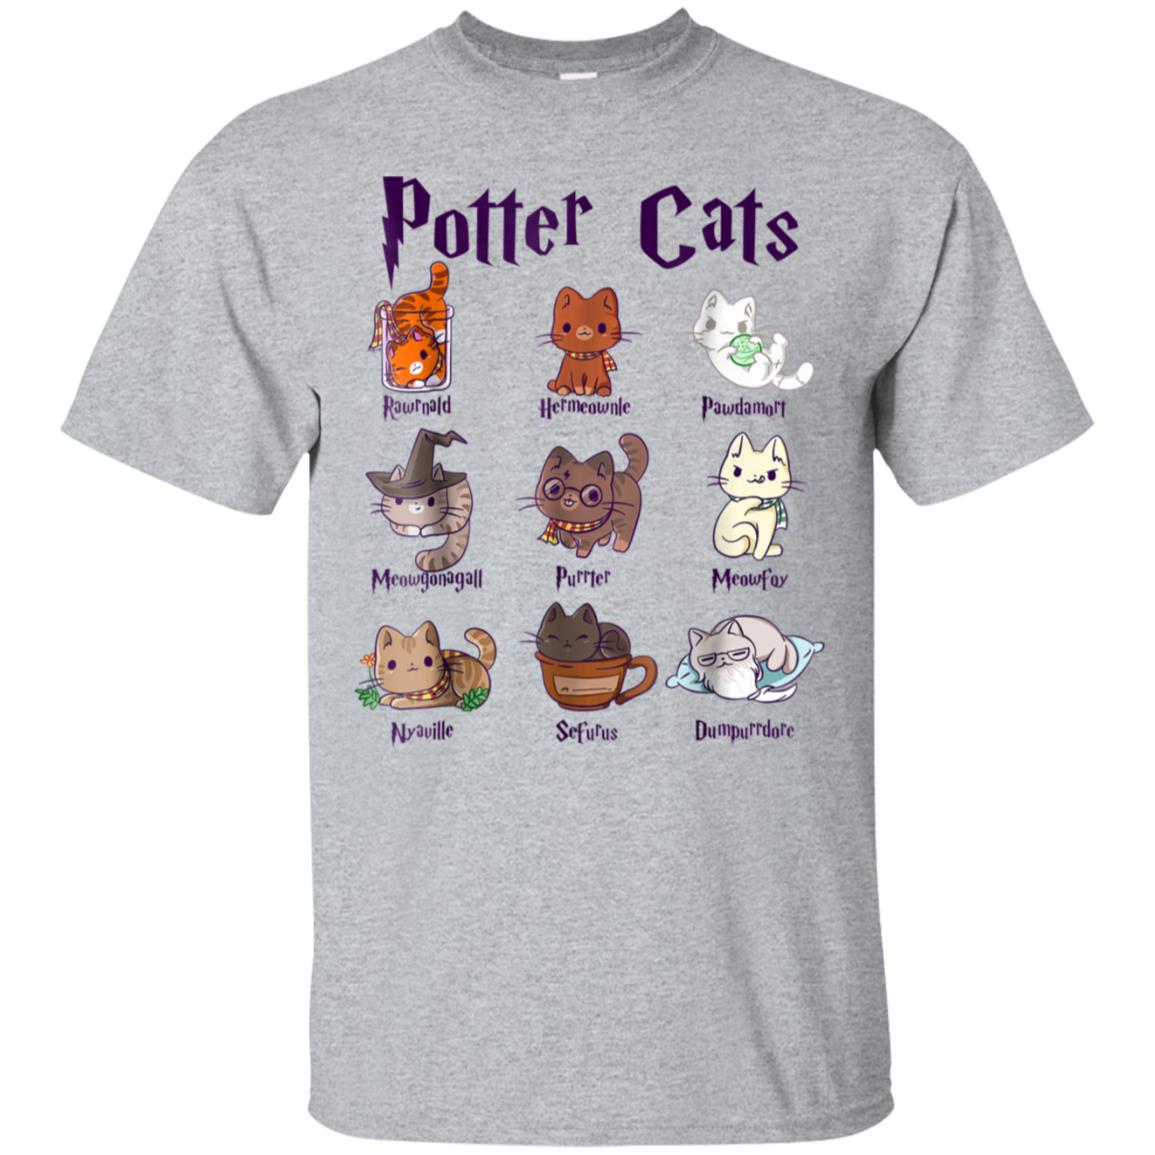 Harry Pawter Cute Kitten Potter Cats T-Shirt For Women 99promocode